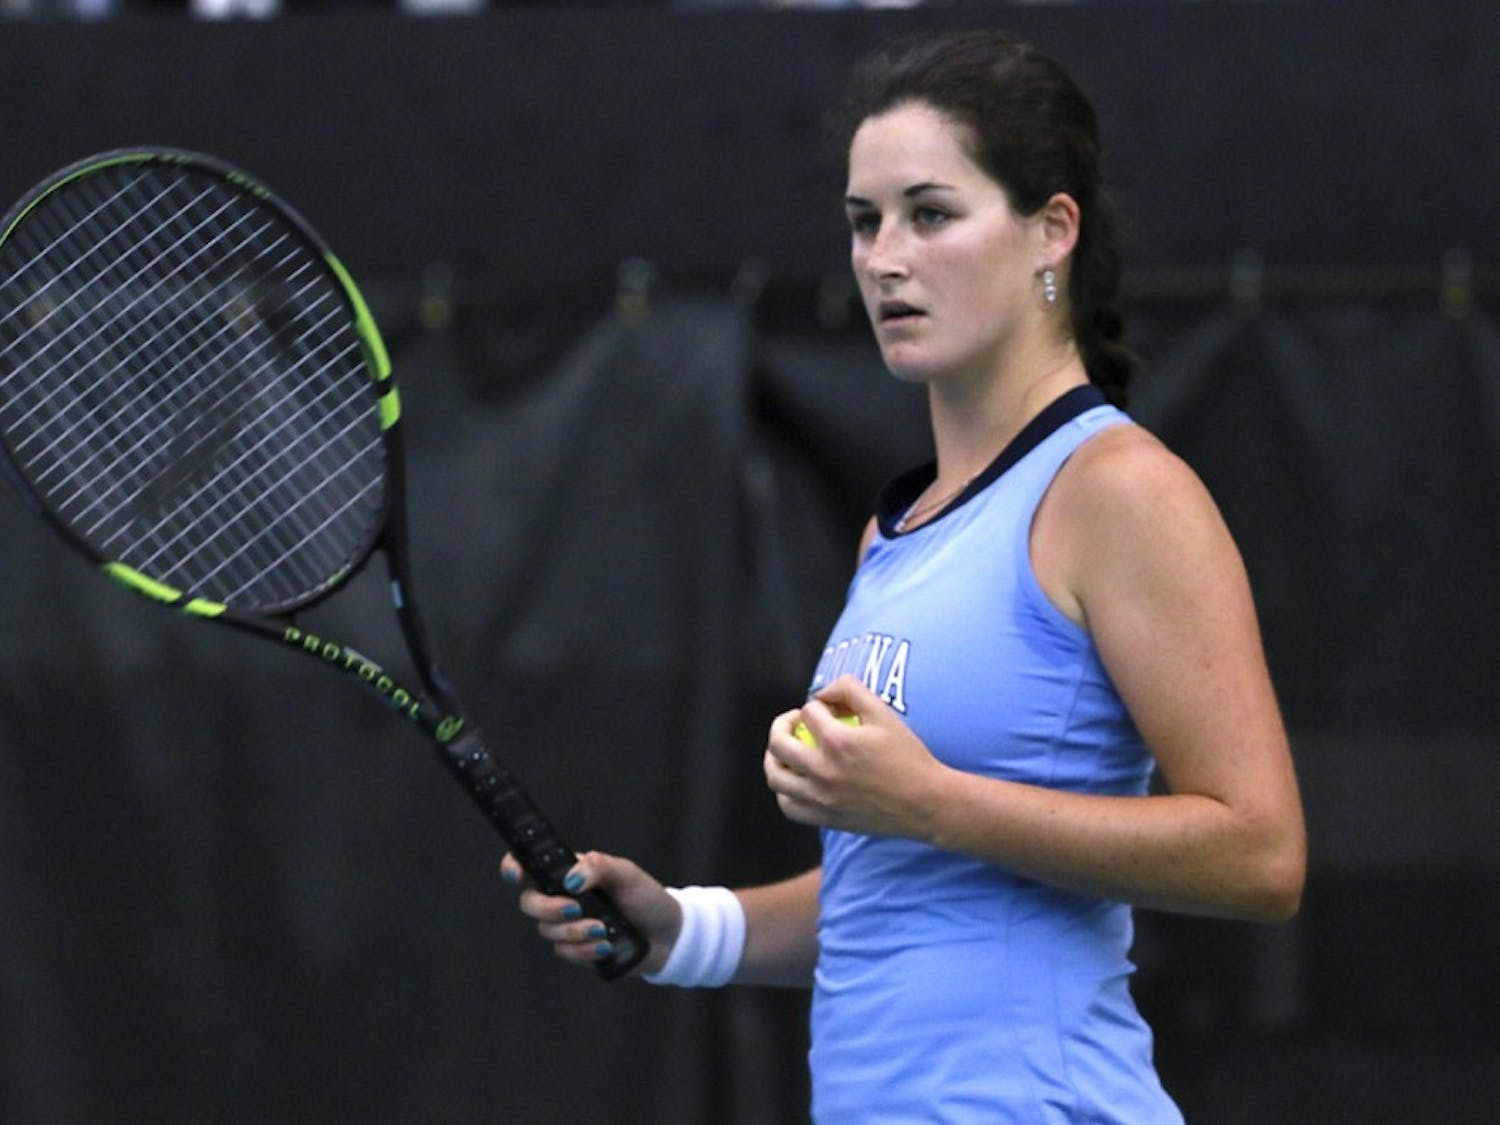 Jamie Loeb prepares to serves in a match against Duke in April. Loeb finished the 2014-15 season by winning an NCAA singles championship.